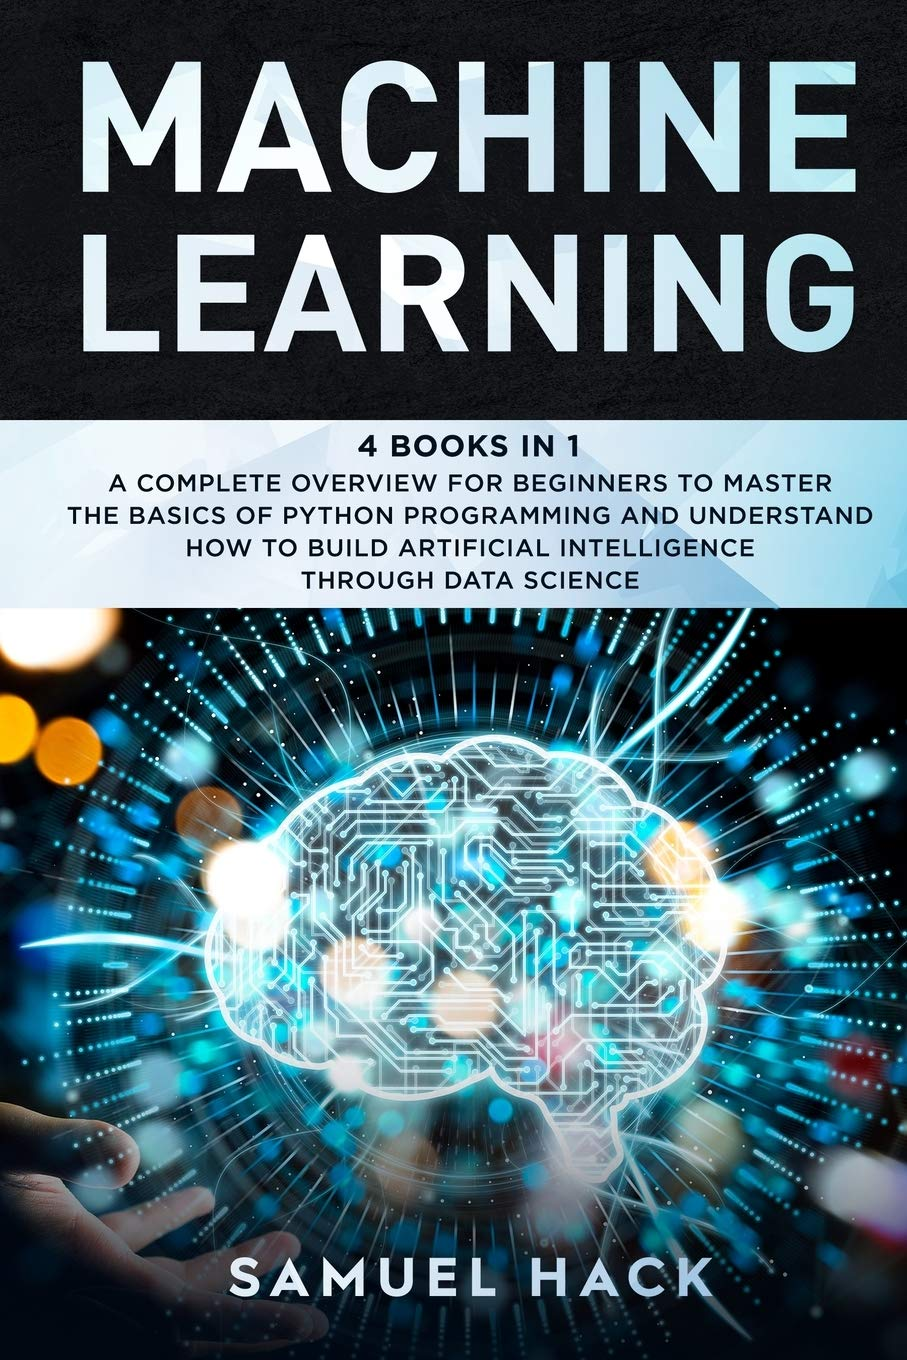 Machine Learning: 4 Books in 1: A Complete Overview for Beginners to Master the Basics of Python Programming and Understand How to Build Artificial Intelligence Through Data Science